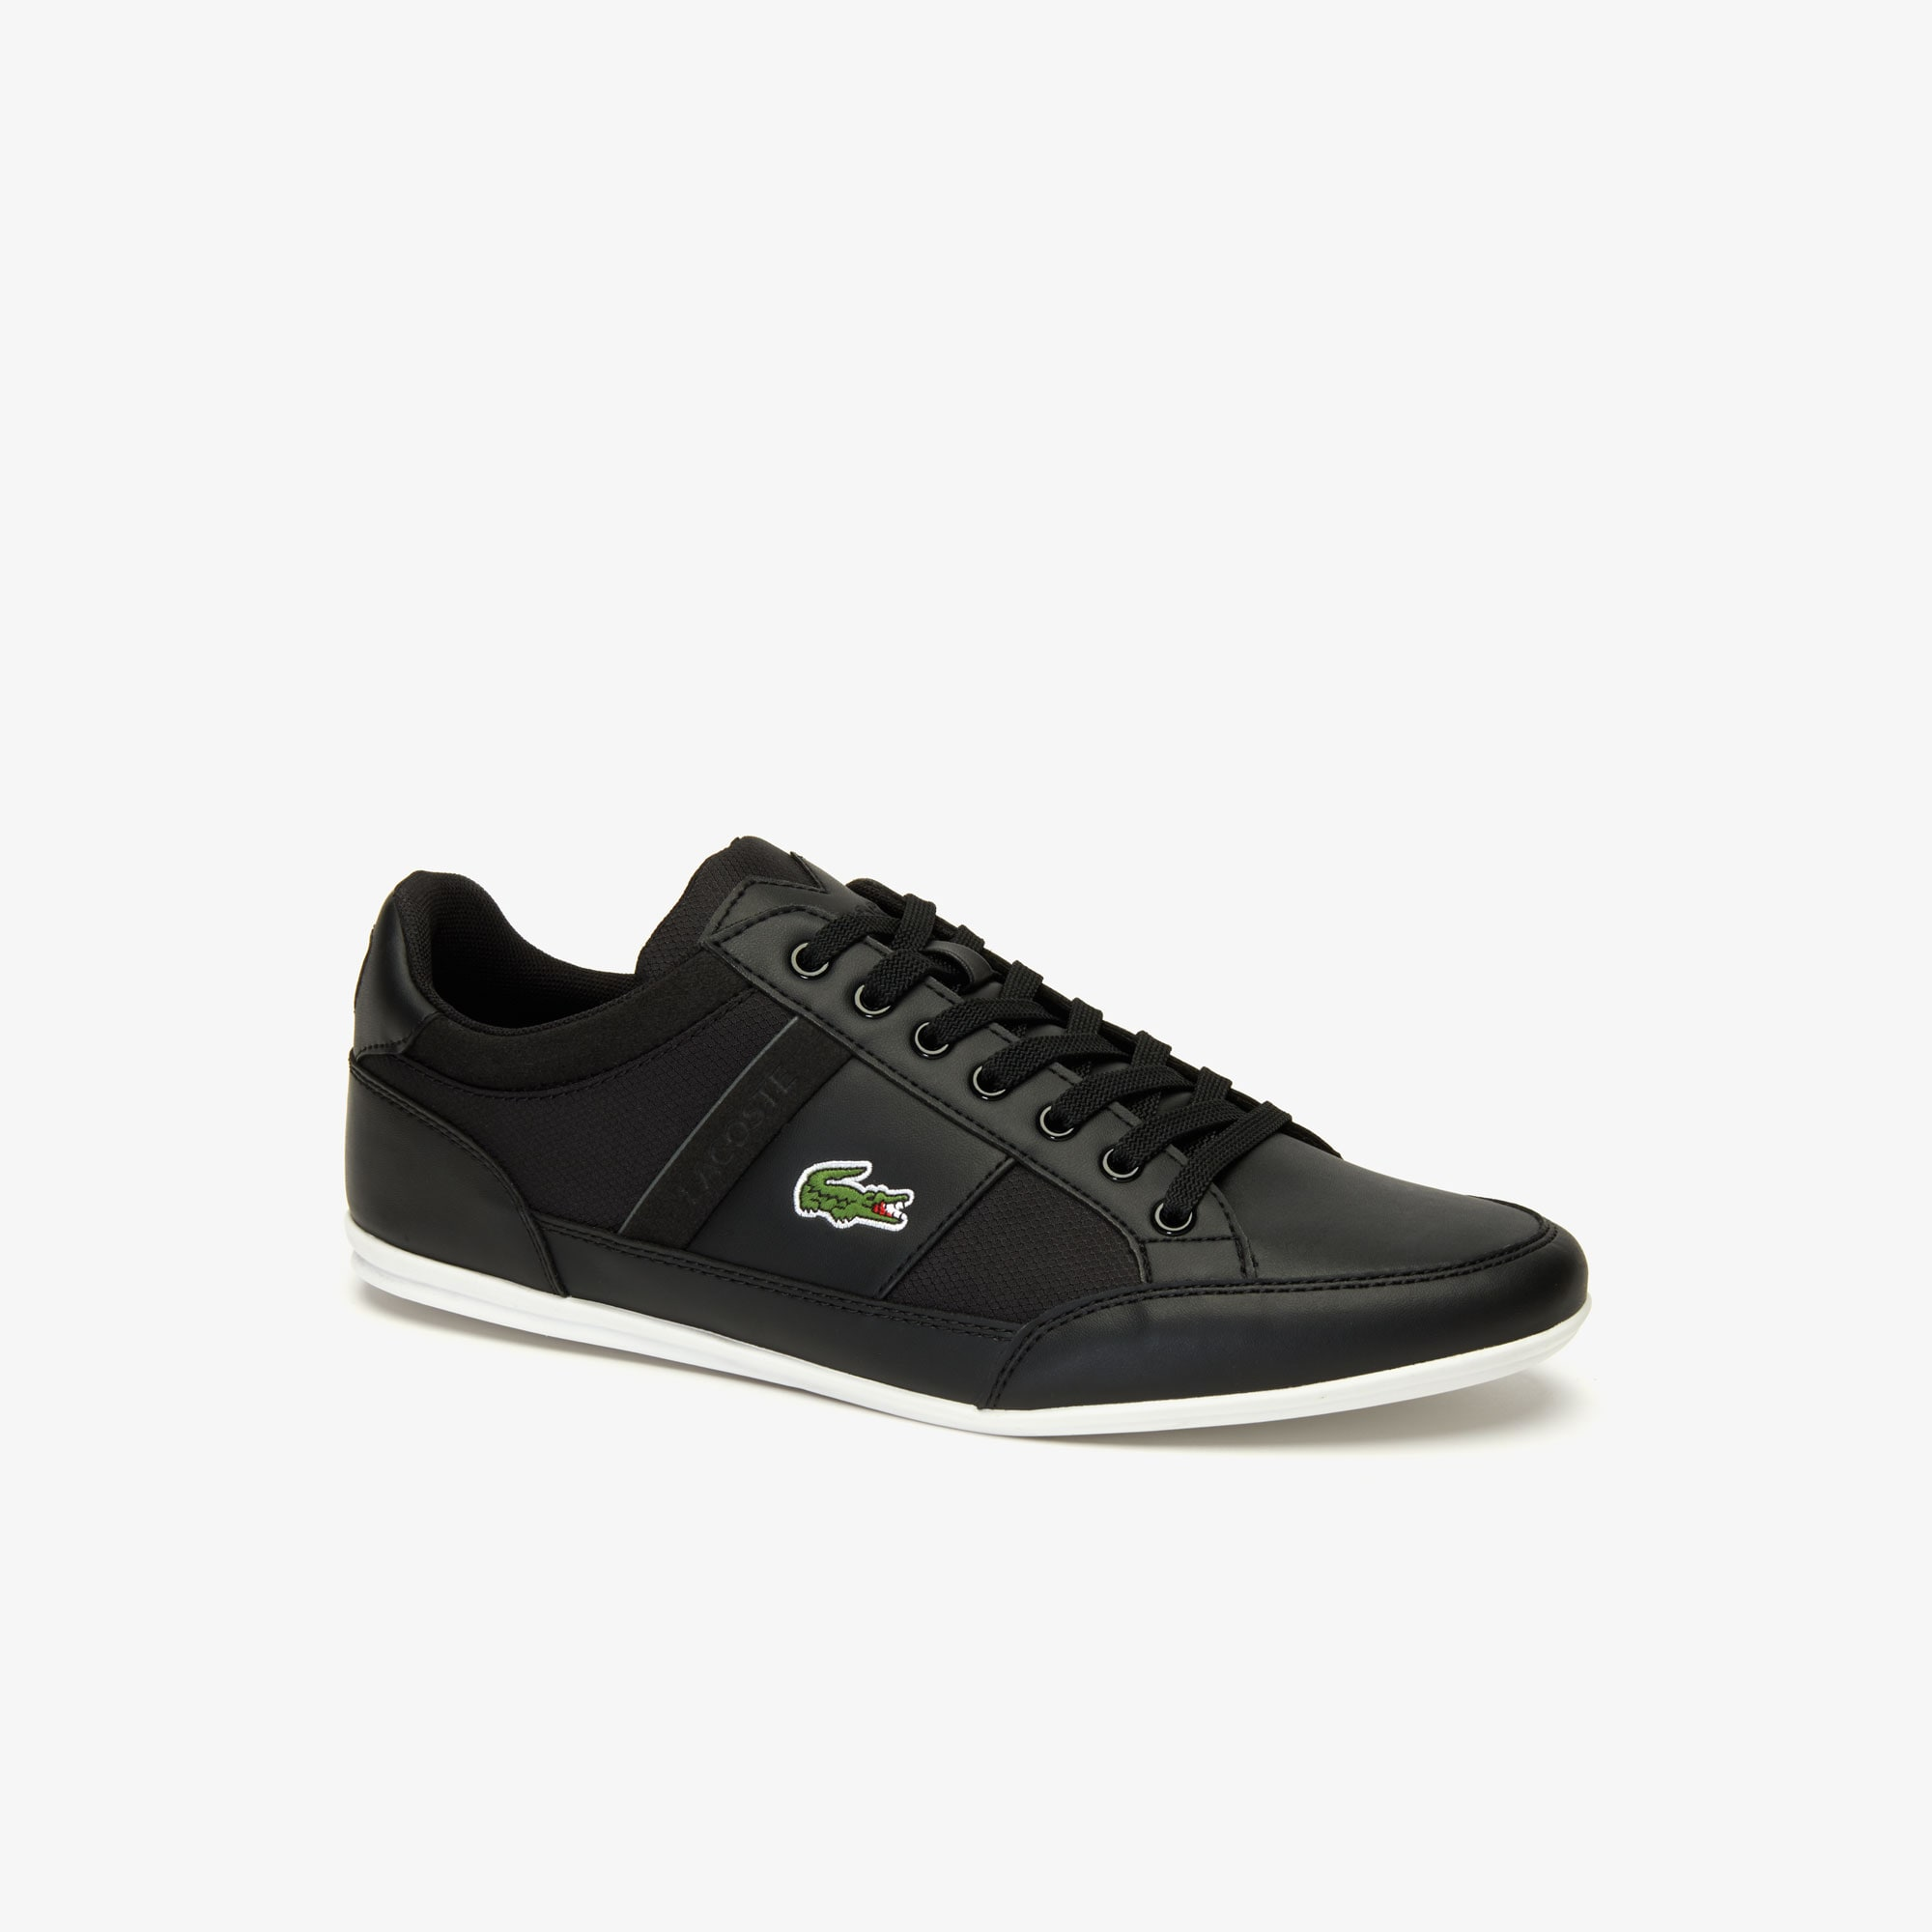 06df4788e6f Lacoste shoes for men: Sneakers, Trainers, Boots | LACOSTE